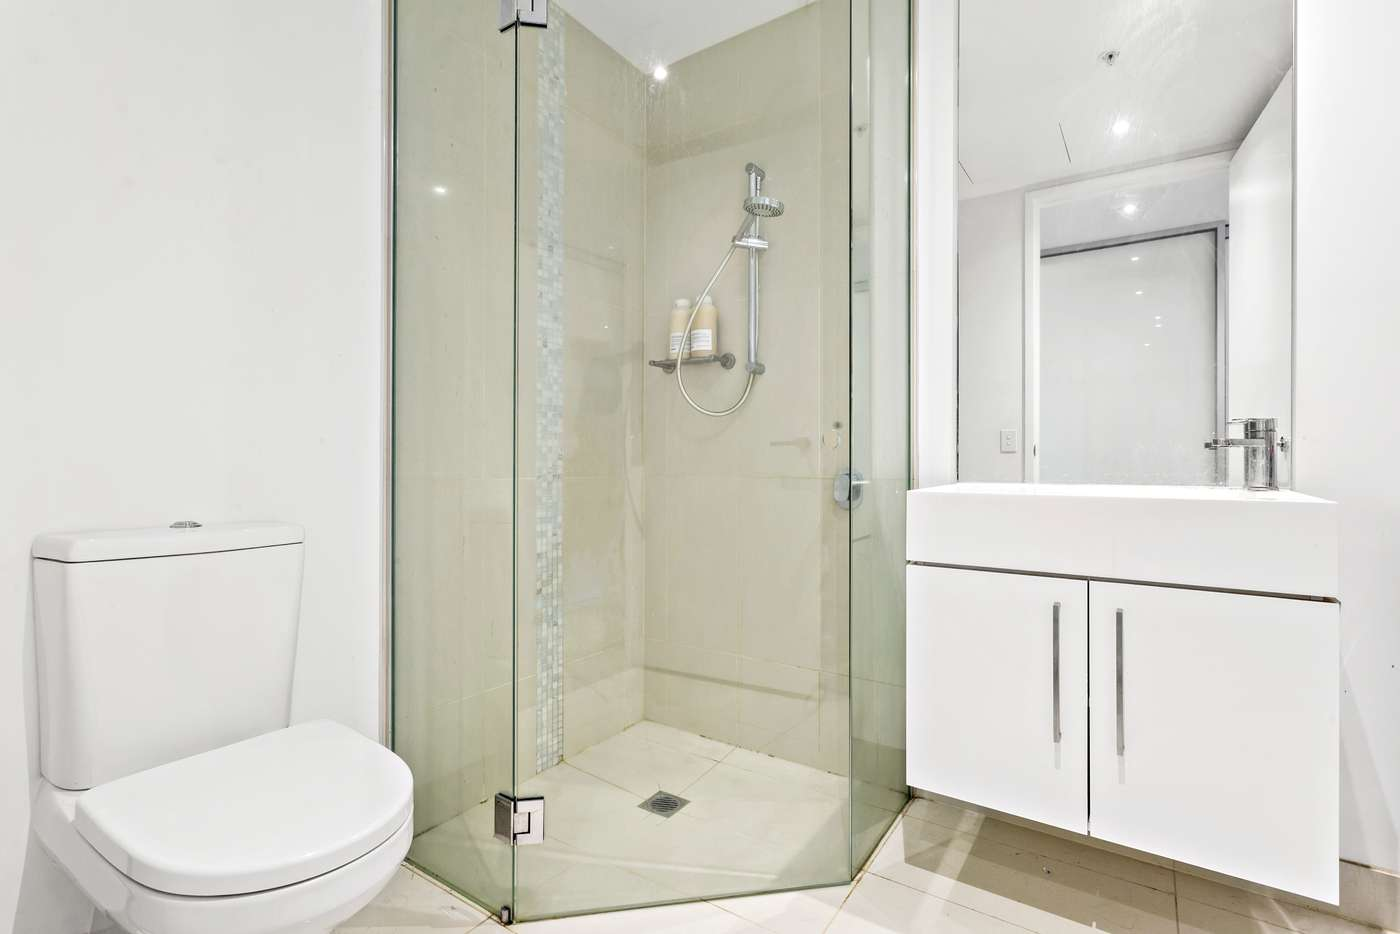 Fifth view of Homely apartment listing, 2501/9 Power Street, Southbank VIC 3006